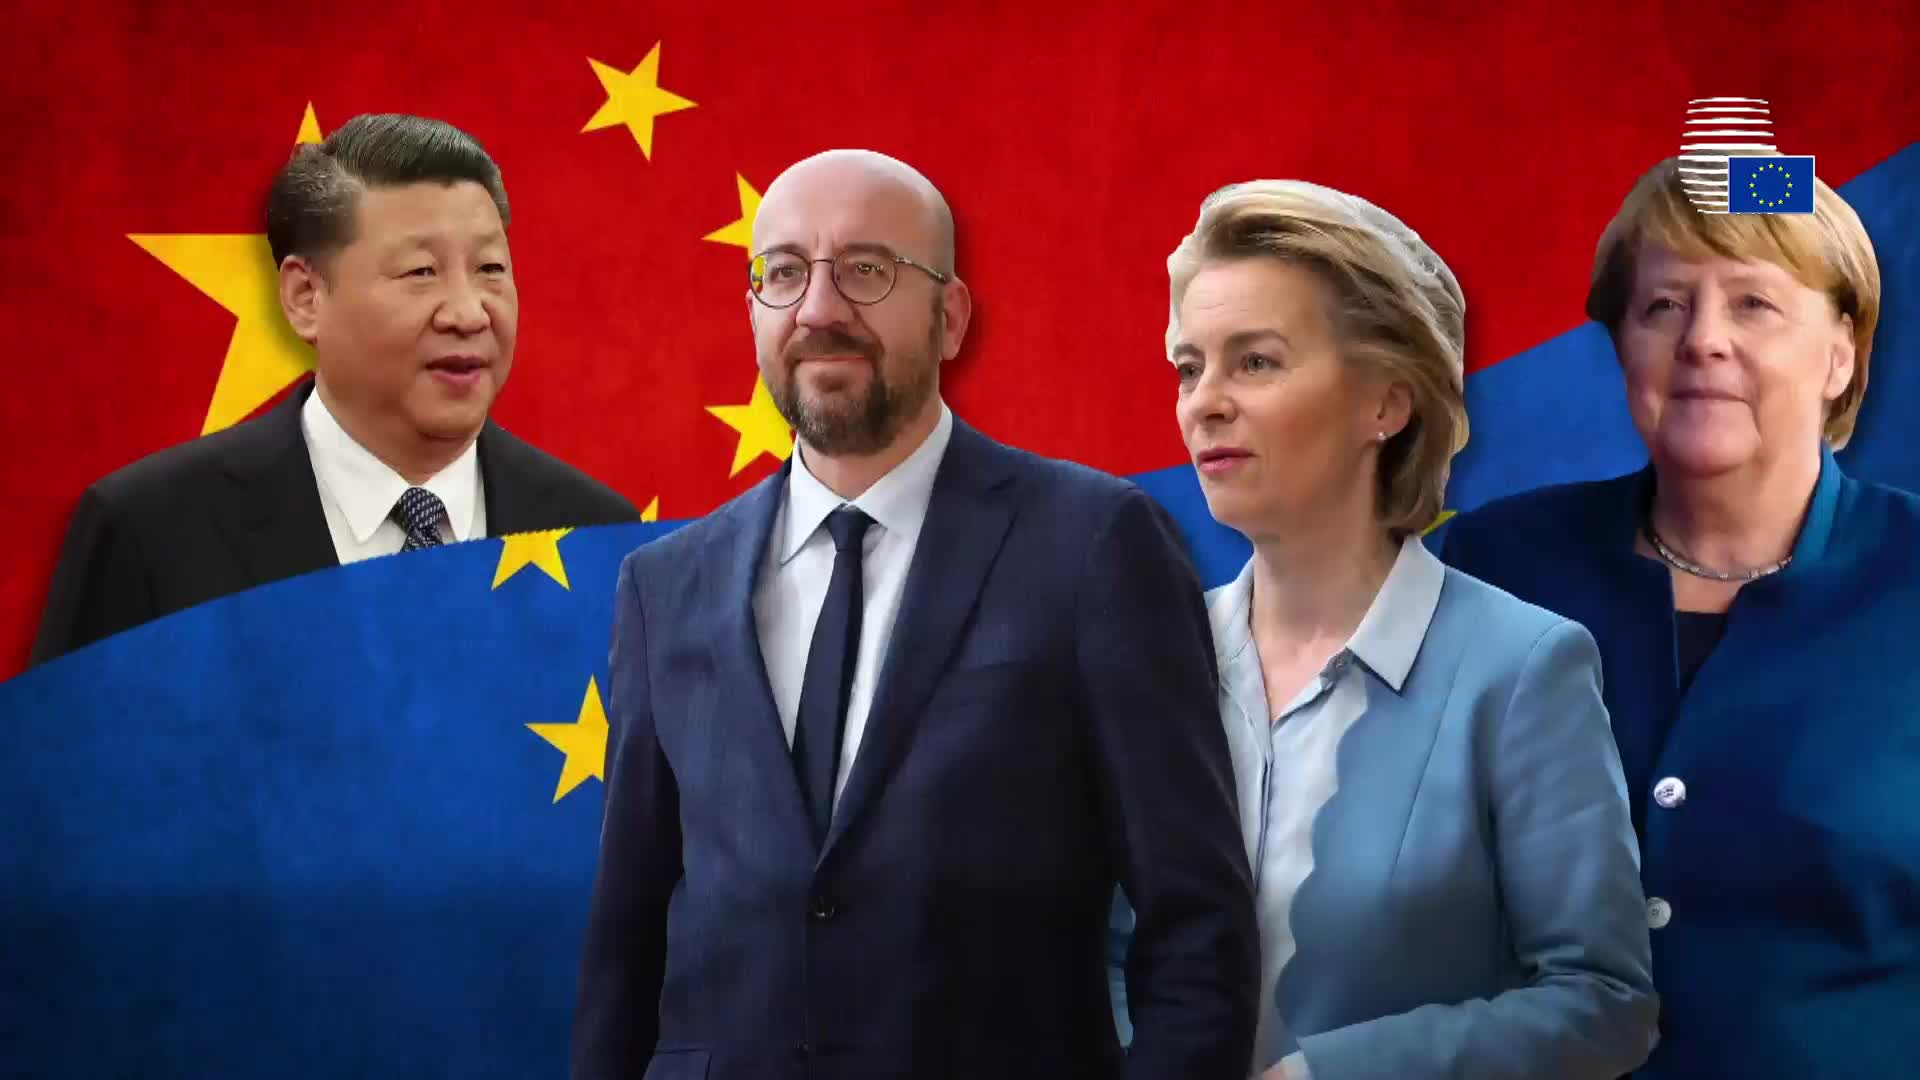 China-EU Investment Agreement Overshadowed by Sanctions and Diplomatic Crisis